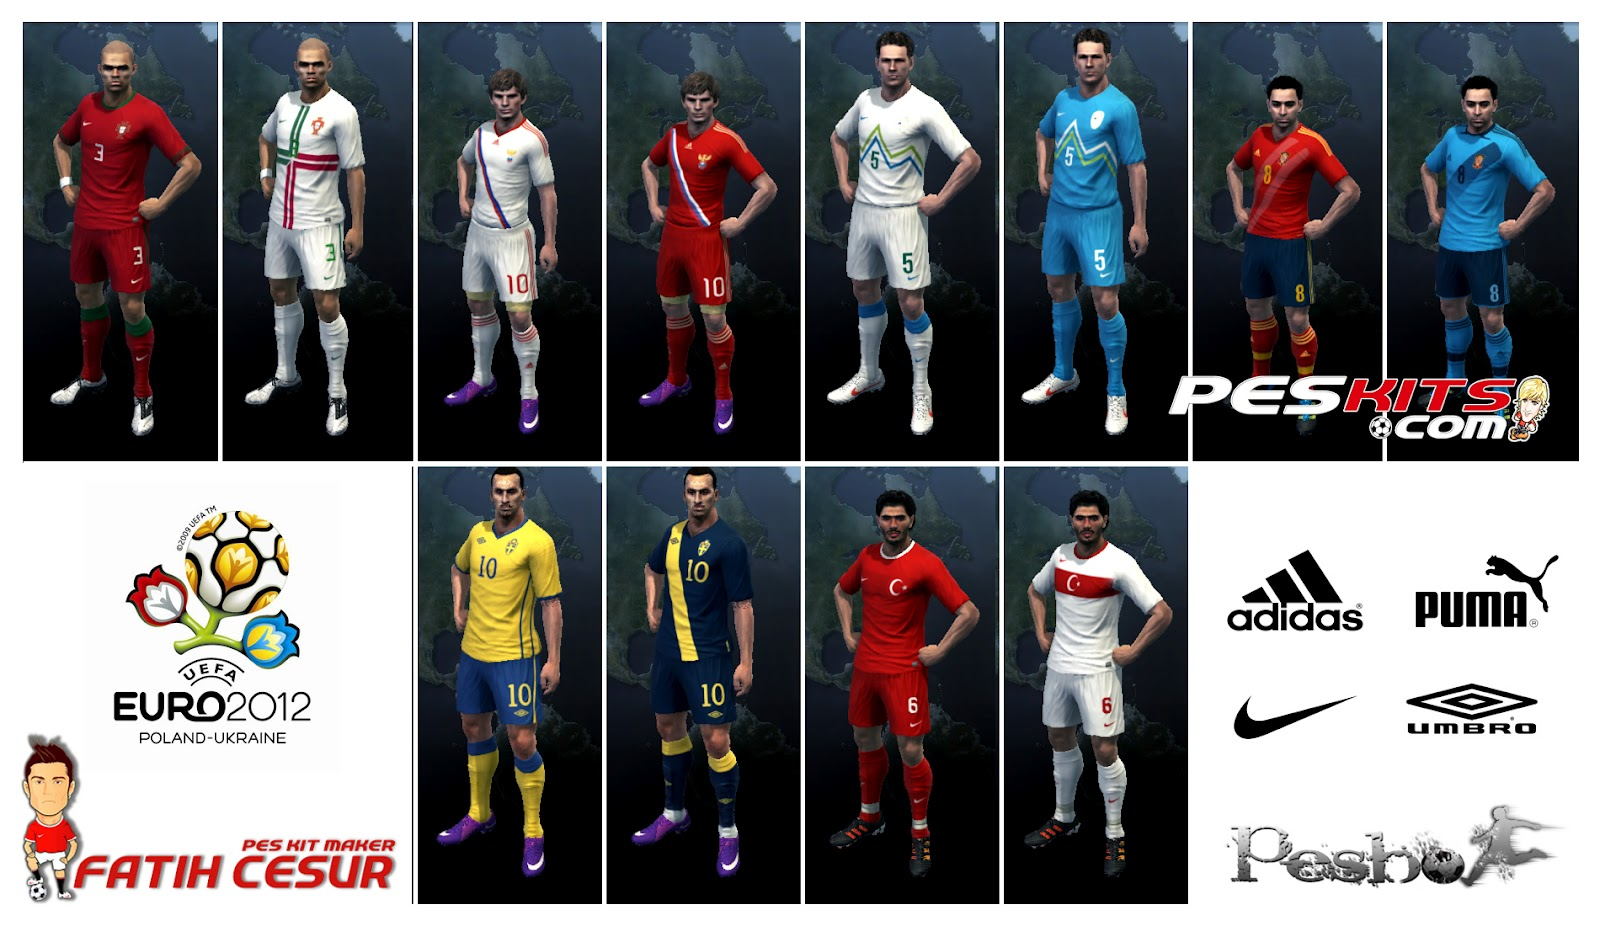 PES 2012 EURO 2012 Kits Pack by Fatih Cesur